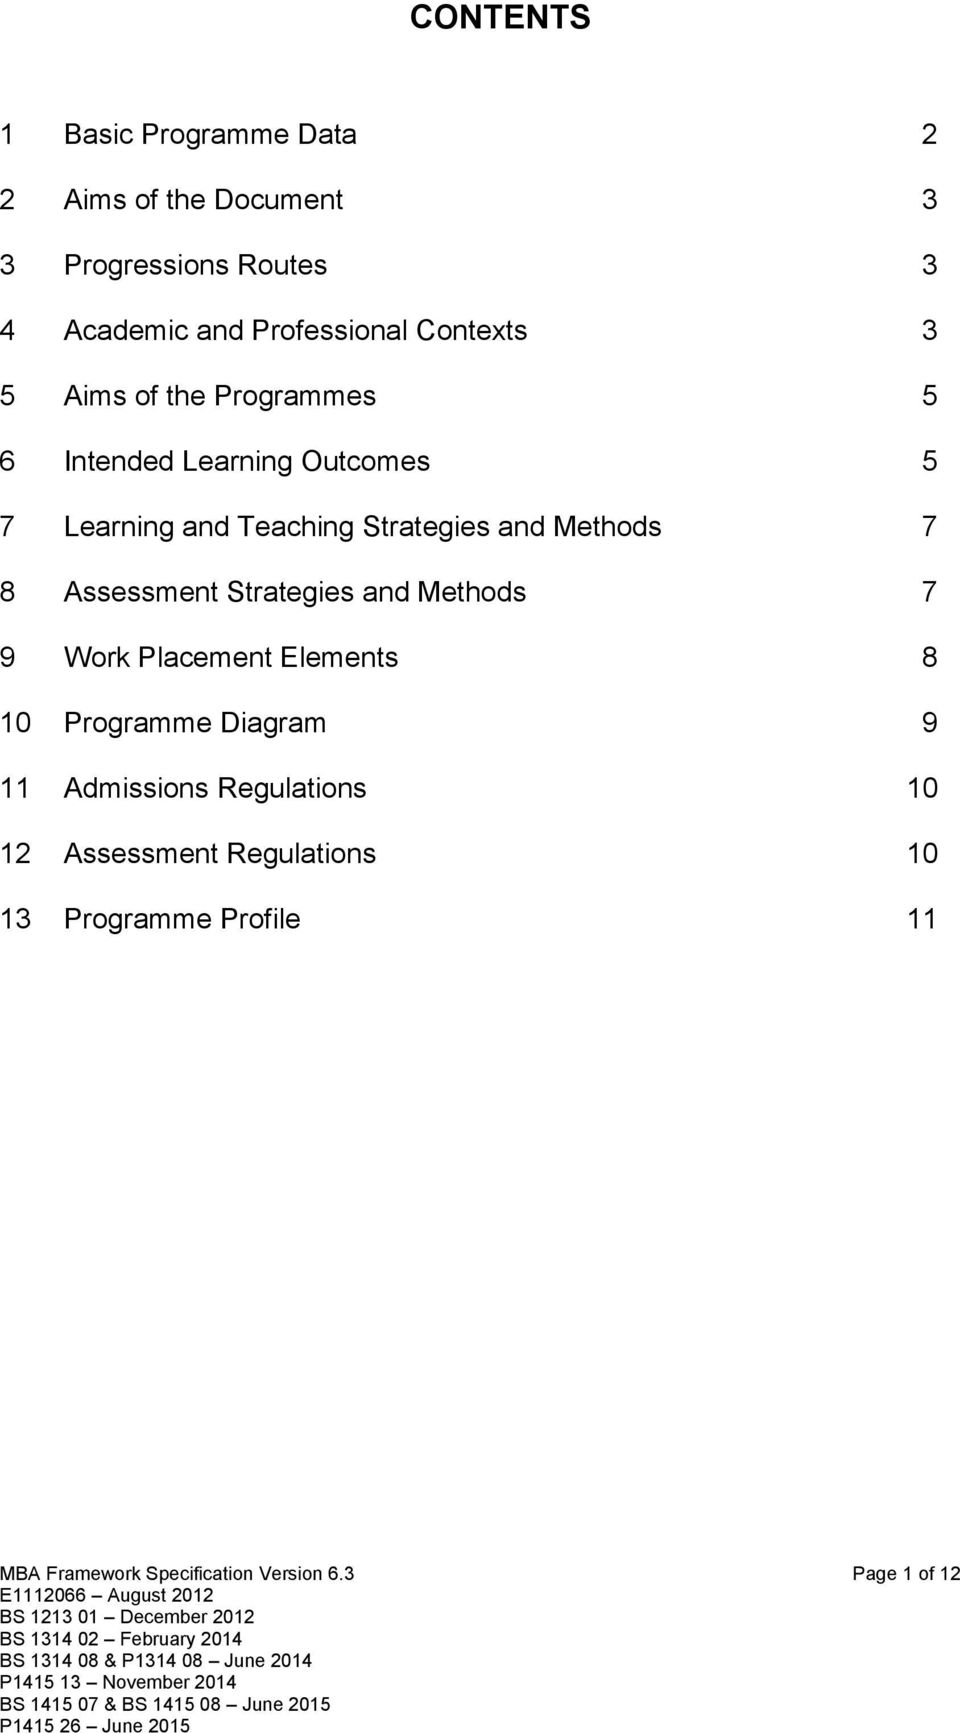 Methods 7 8 Assessment Strategies and Methods 7 9 Work Placement Elements 8 10 Programme Diagram 9 11 Admissions